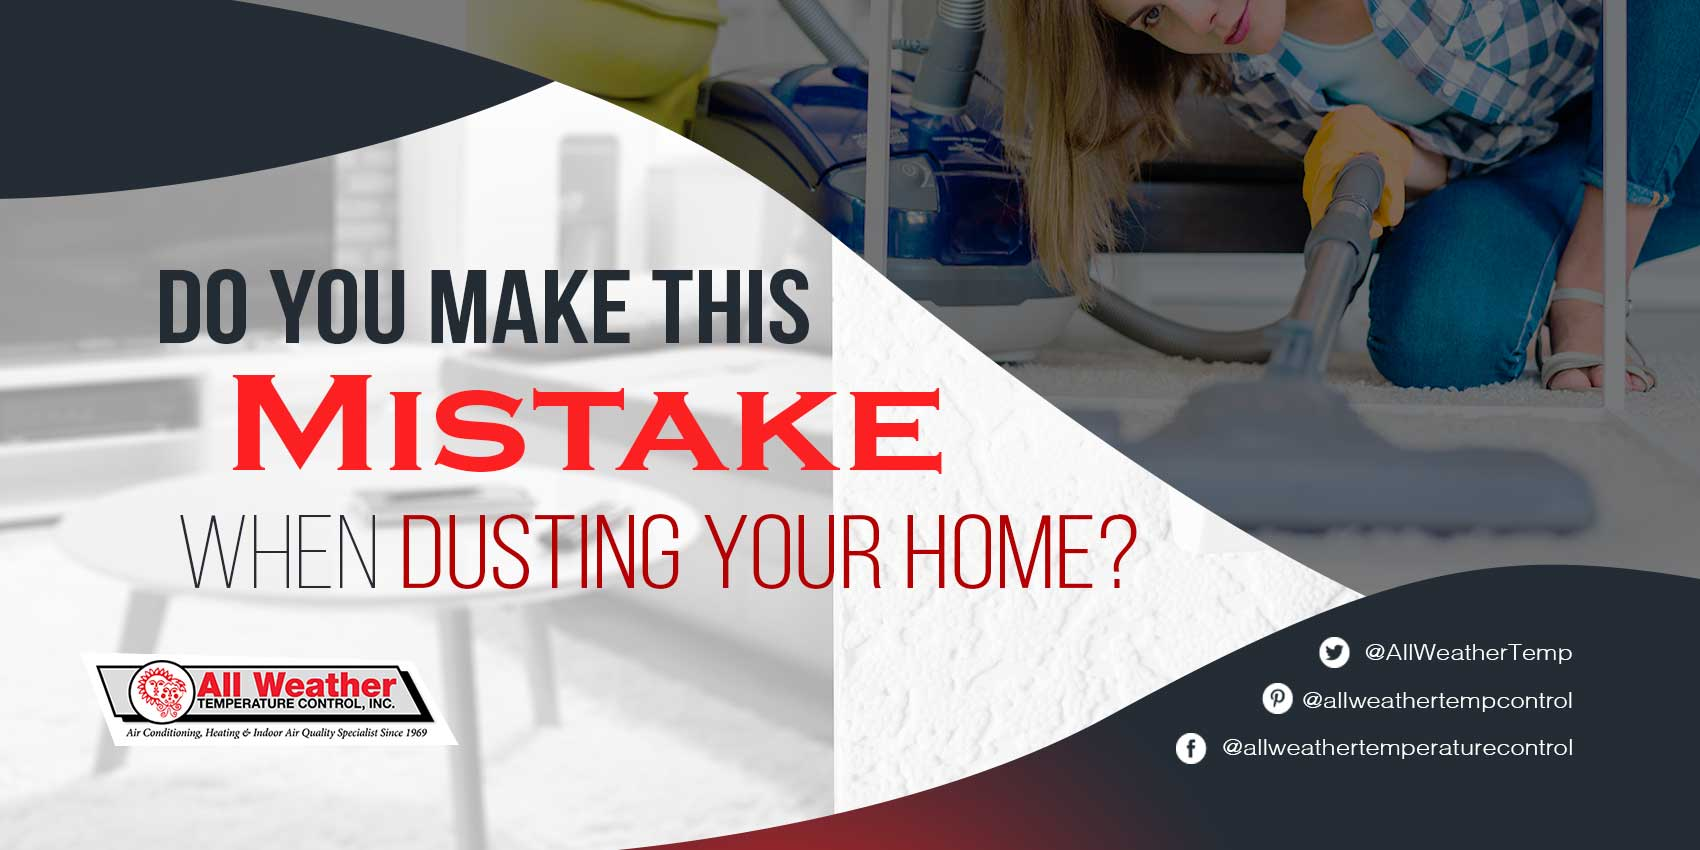 Do You Make This Mistake When Dusting Your Home?